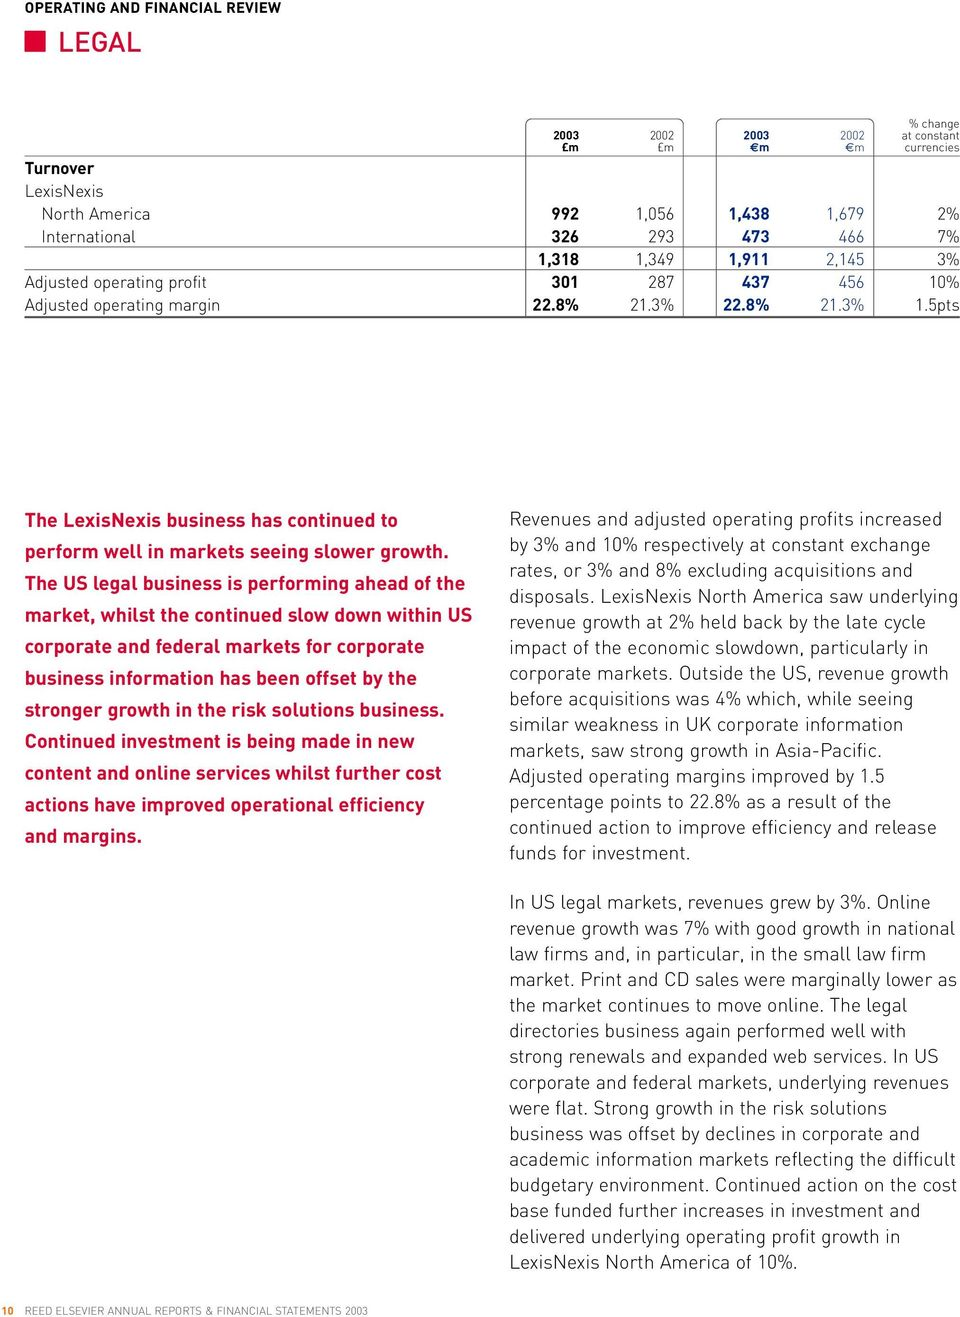 5pts The LexisNexis business has continued to perform well in markets seeing slower growth.